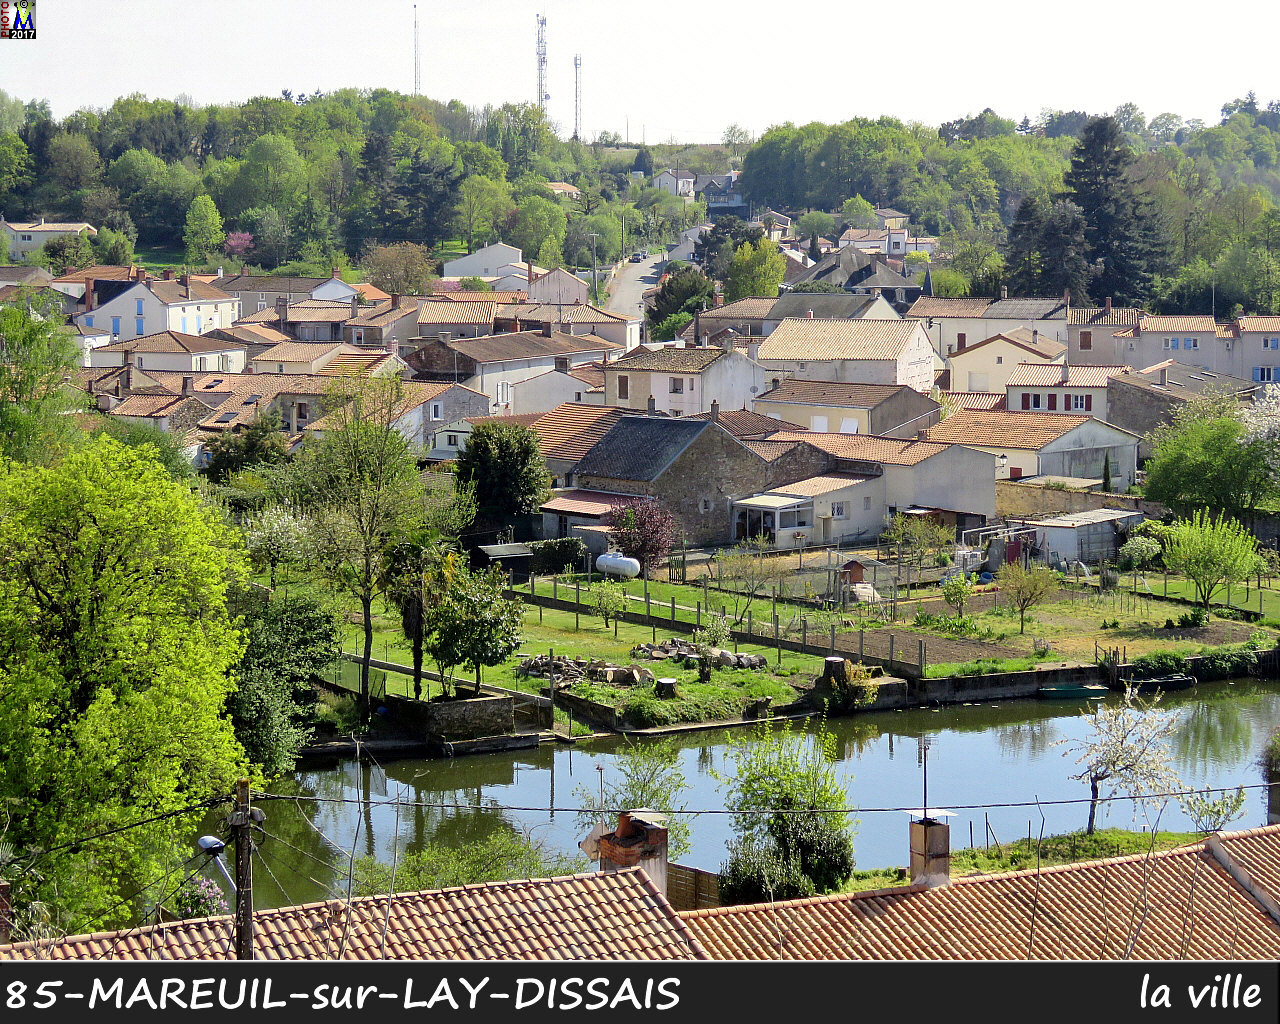 85MAREUIL-LAY_ville_1004.jpg